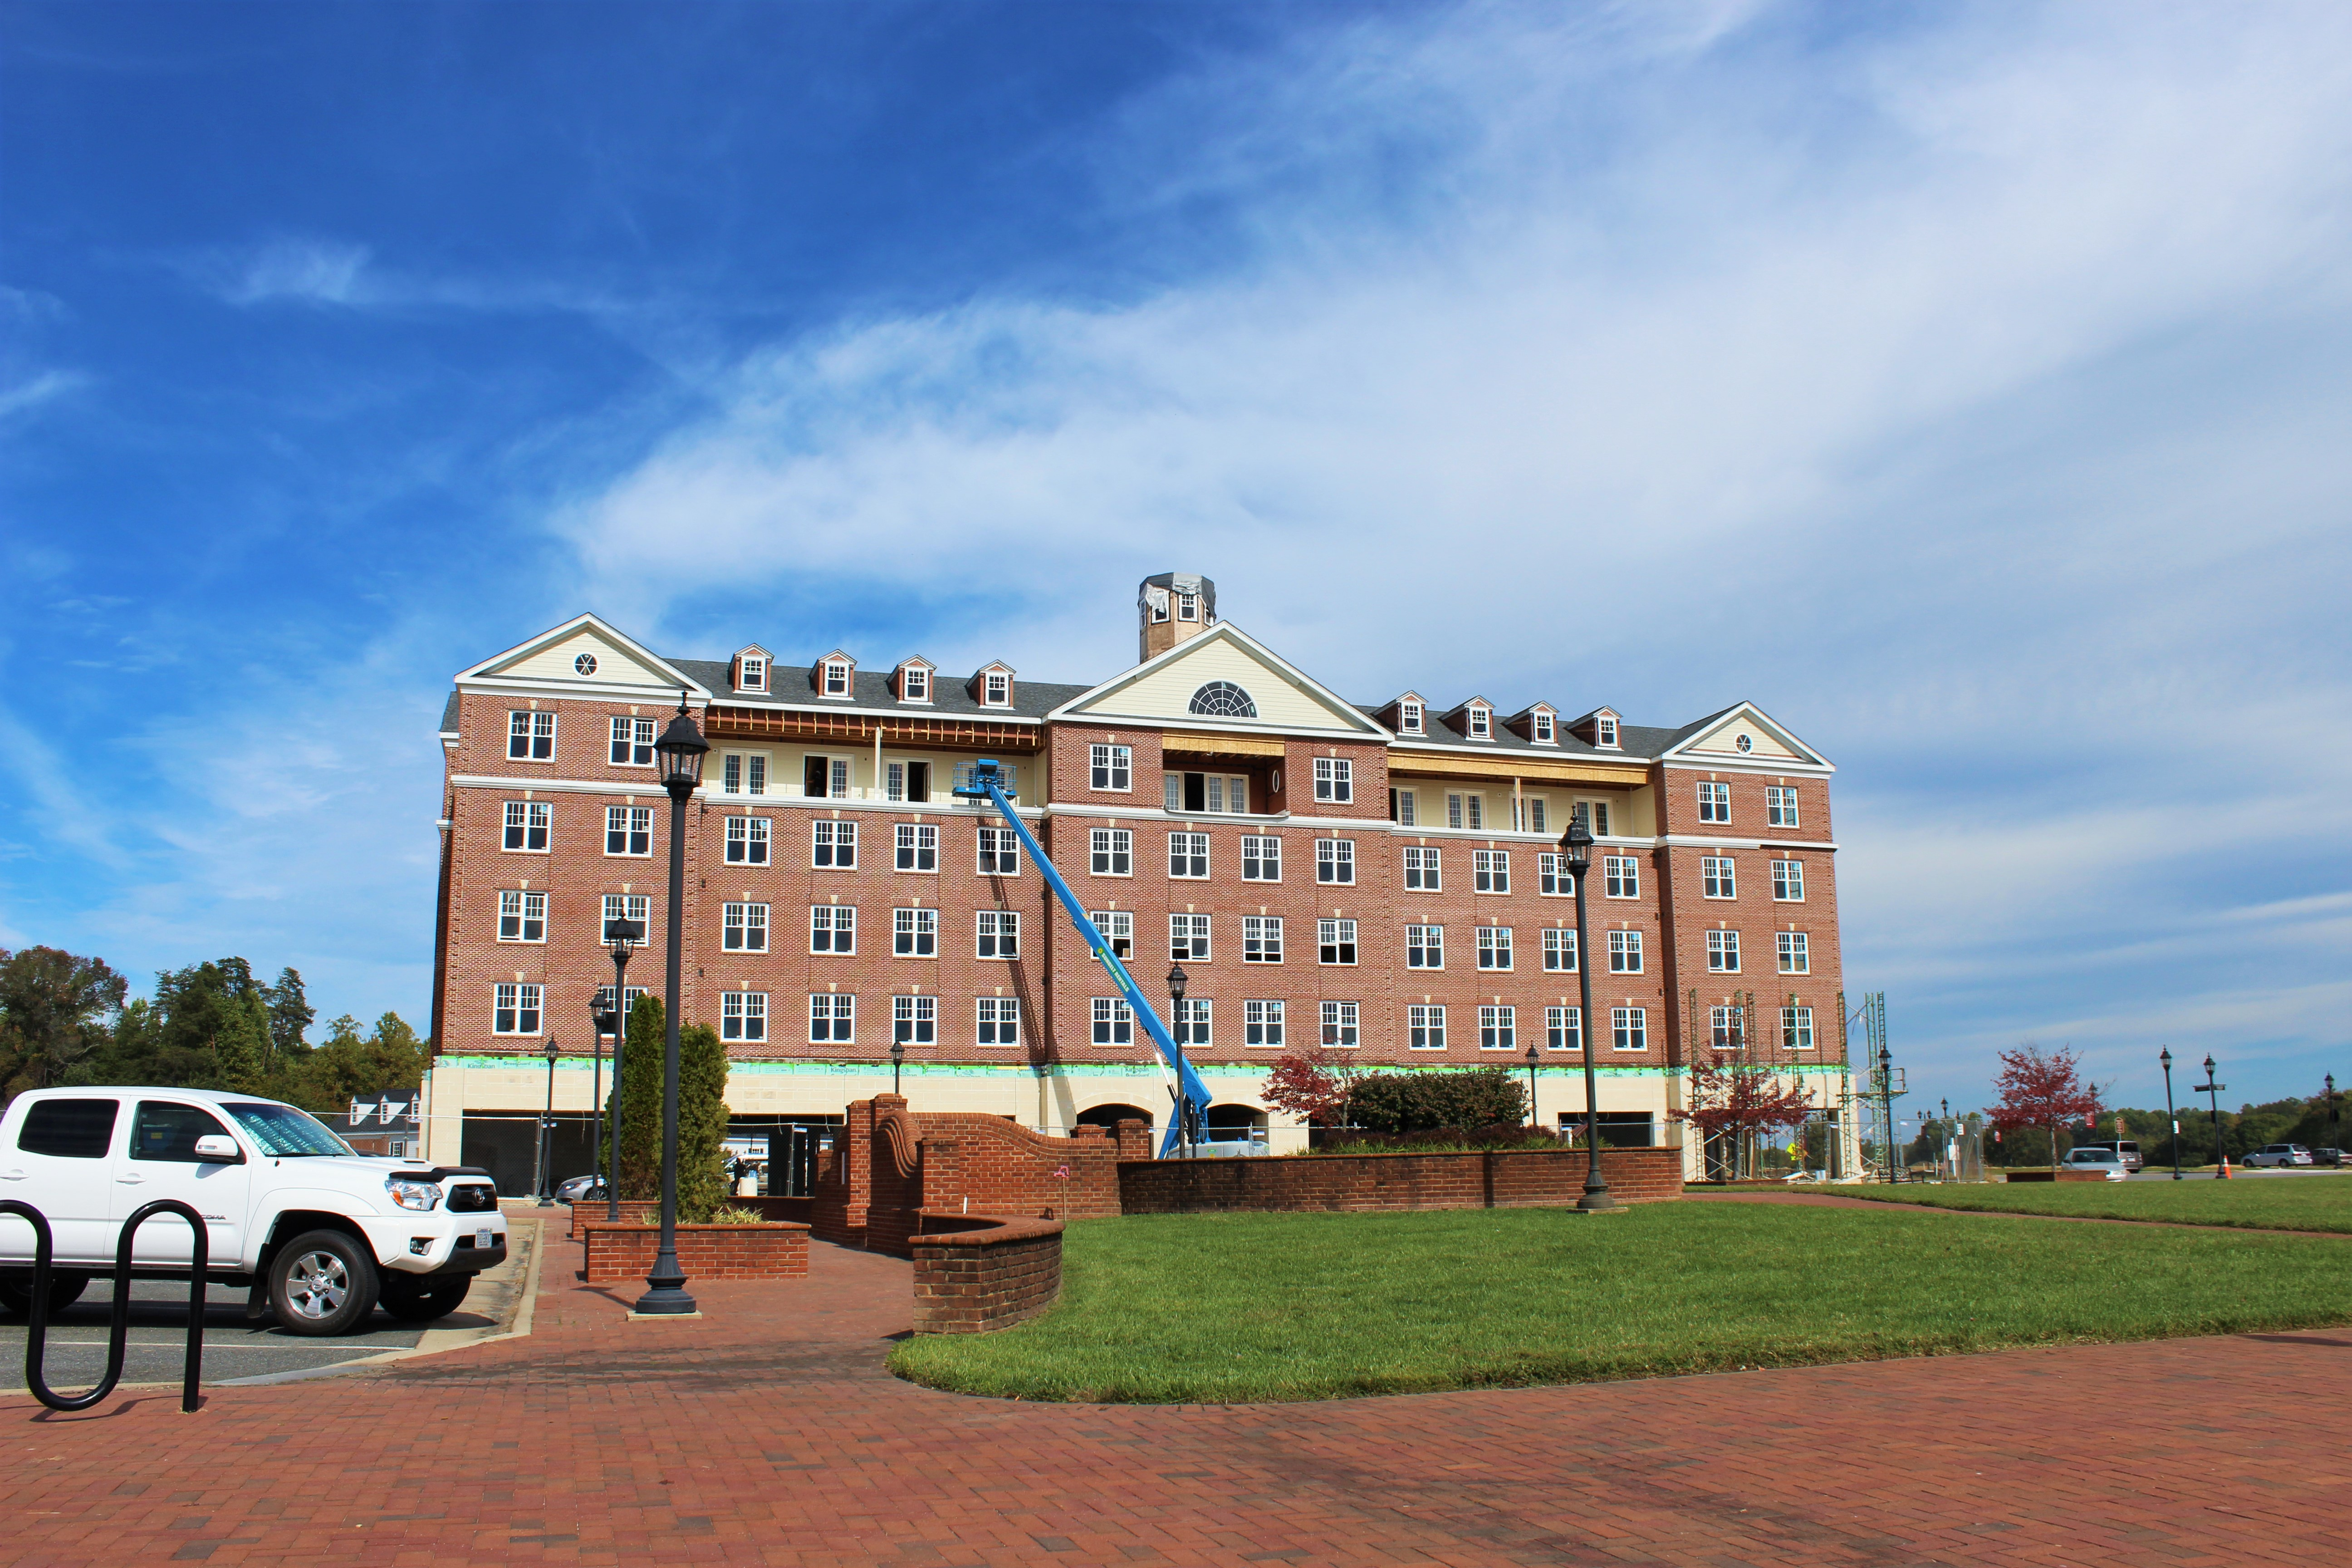 Local commercial construction round up fredericksburg va fall 2017 commercial construction round up fredericksburg va solutioingenieria Image collections